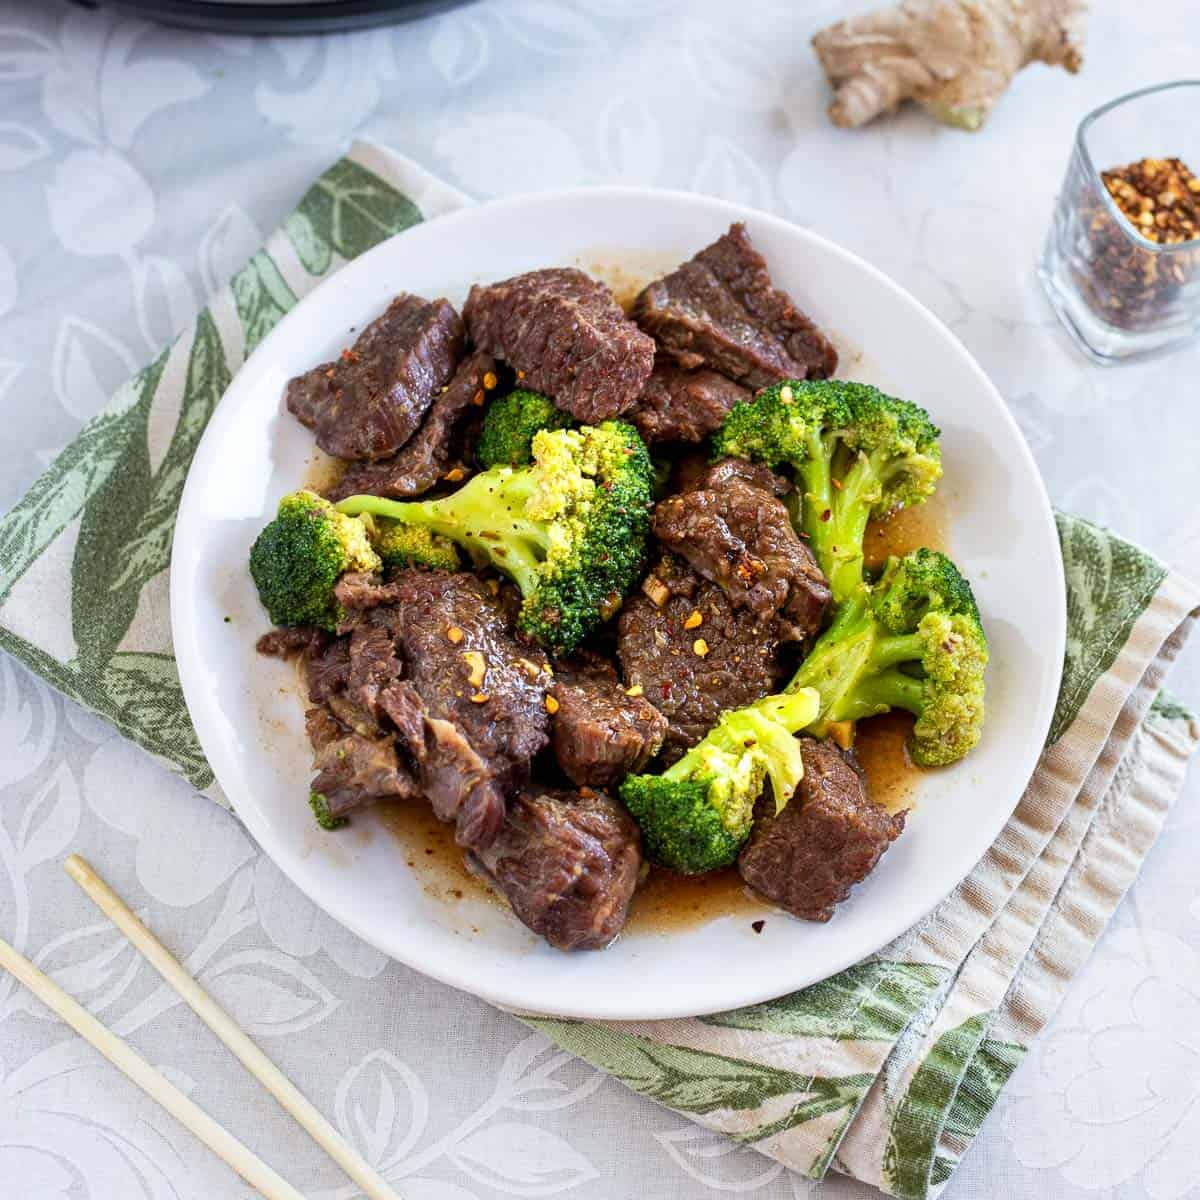 Plate of keto beef and broccoli